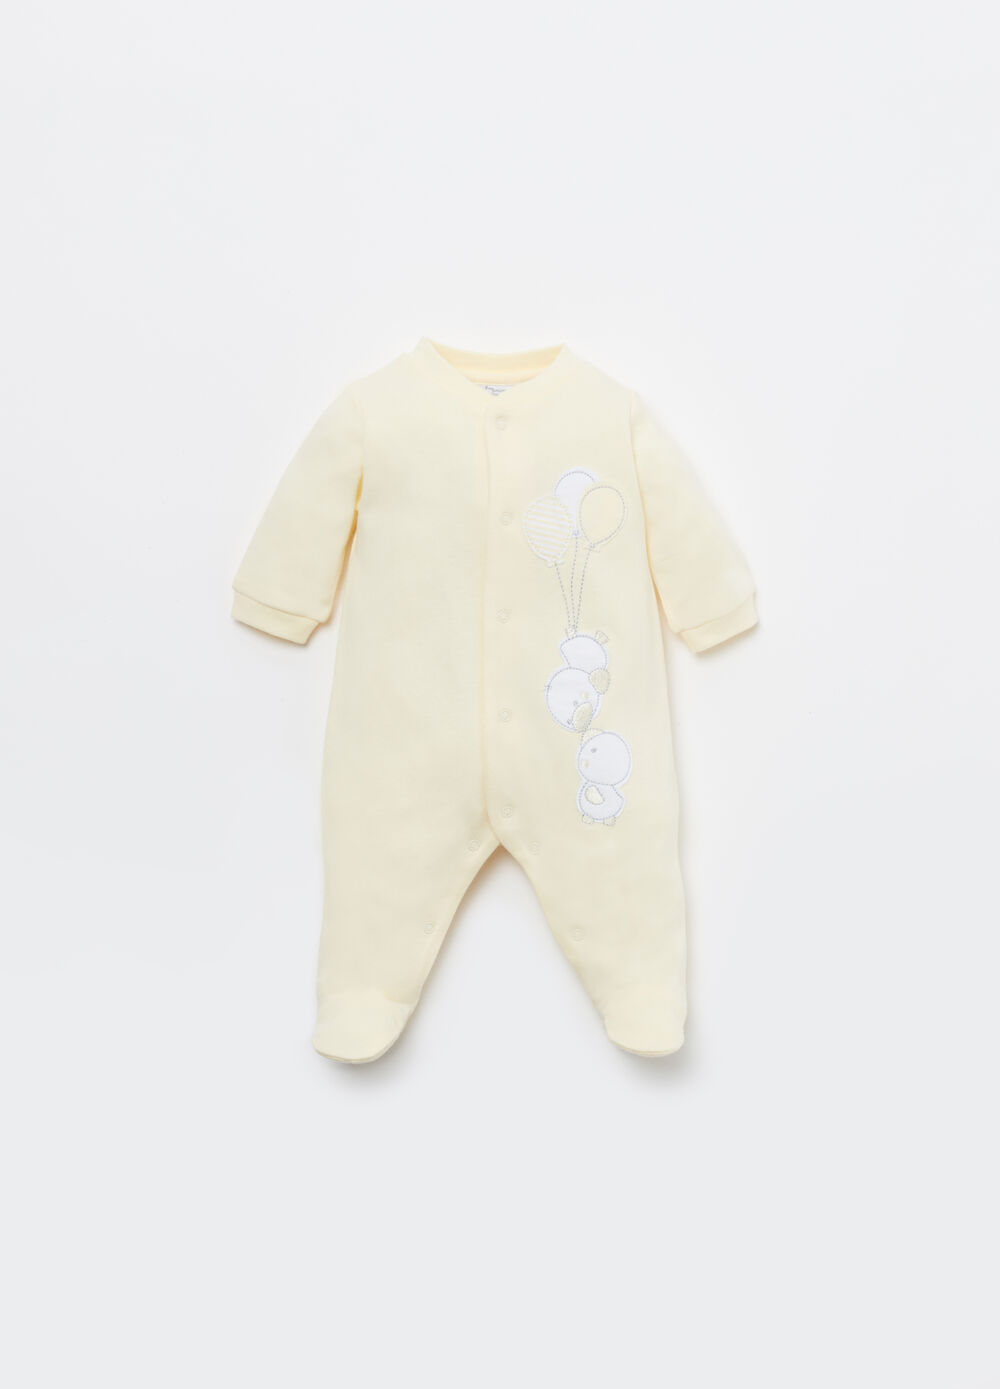 100% cotton onesie with embroidery and applications